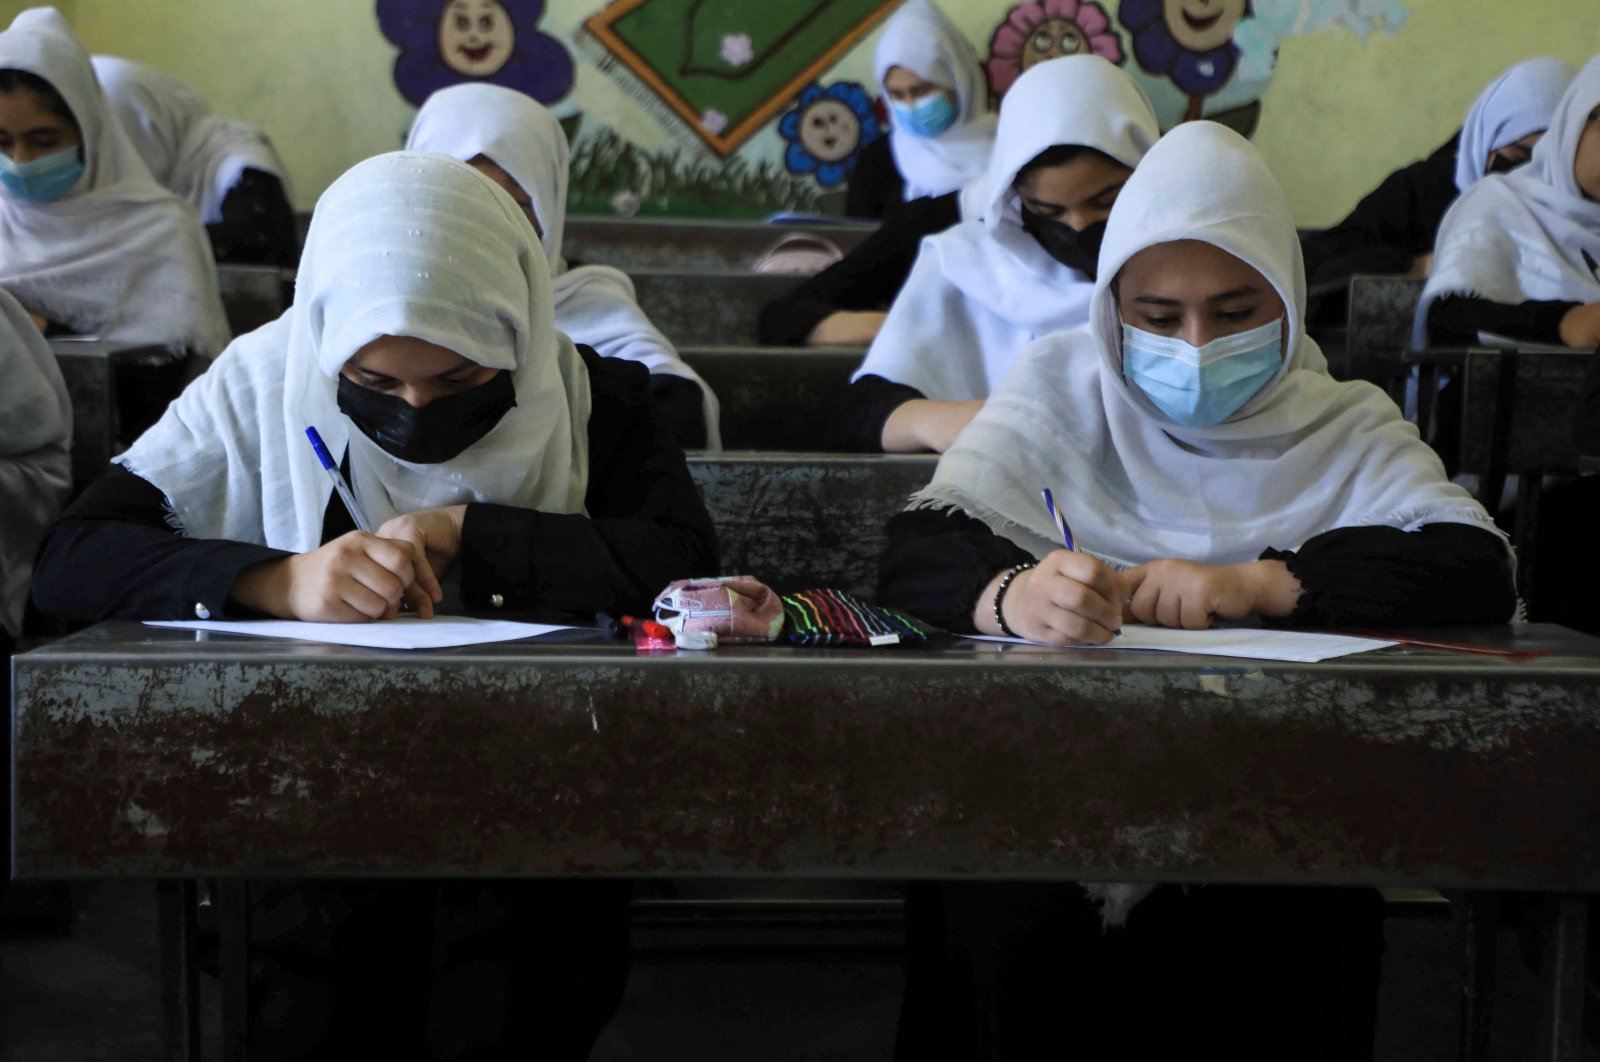 Schoolgirls attend class in Herat, Afghanistan, Aug. 17, 2021, following the Taliban's stunning takeover of the country. (AFP Photo)